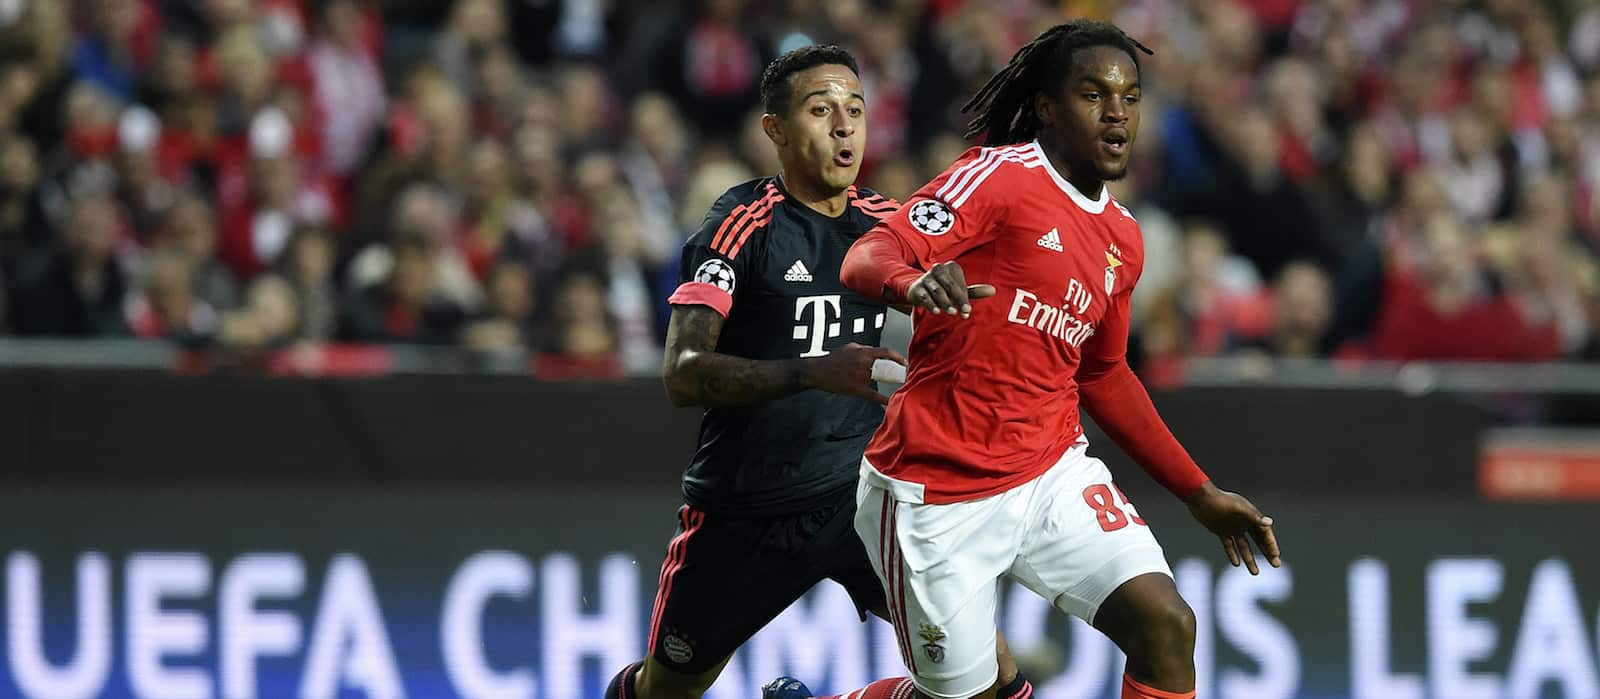 Bayern Munich confirm Renato Sanches could leave on loan